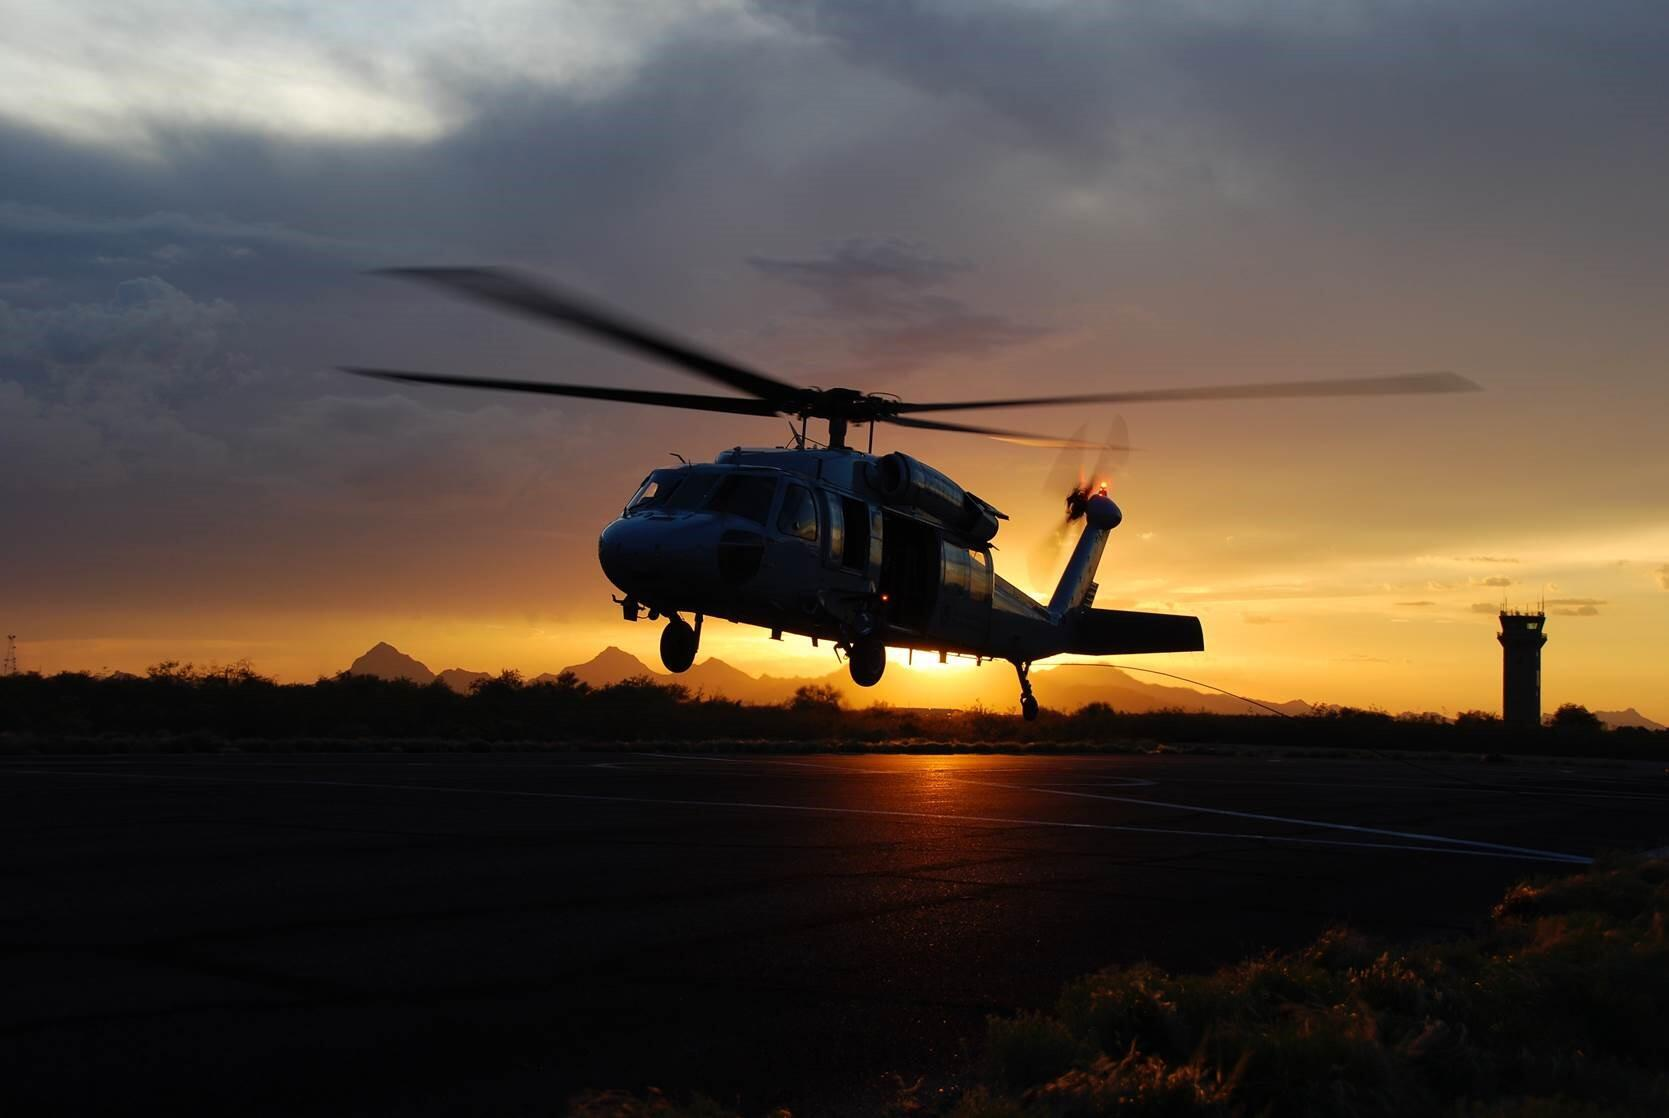 "An Air and Marine Operations UH-60 crew takes off during a desert sunset near Tucson, Arizona.<span style=""color: rgb(31, 73, 125);""><font face=""Calibri"" size=""3""> </font></span>"